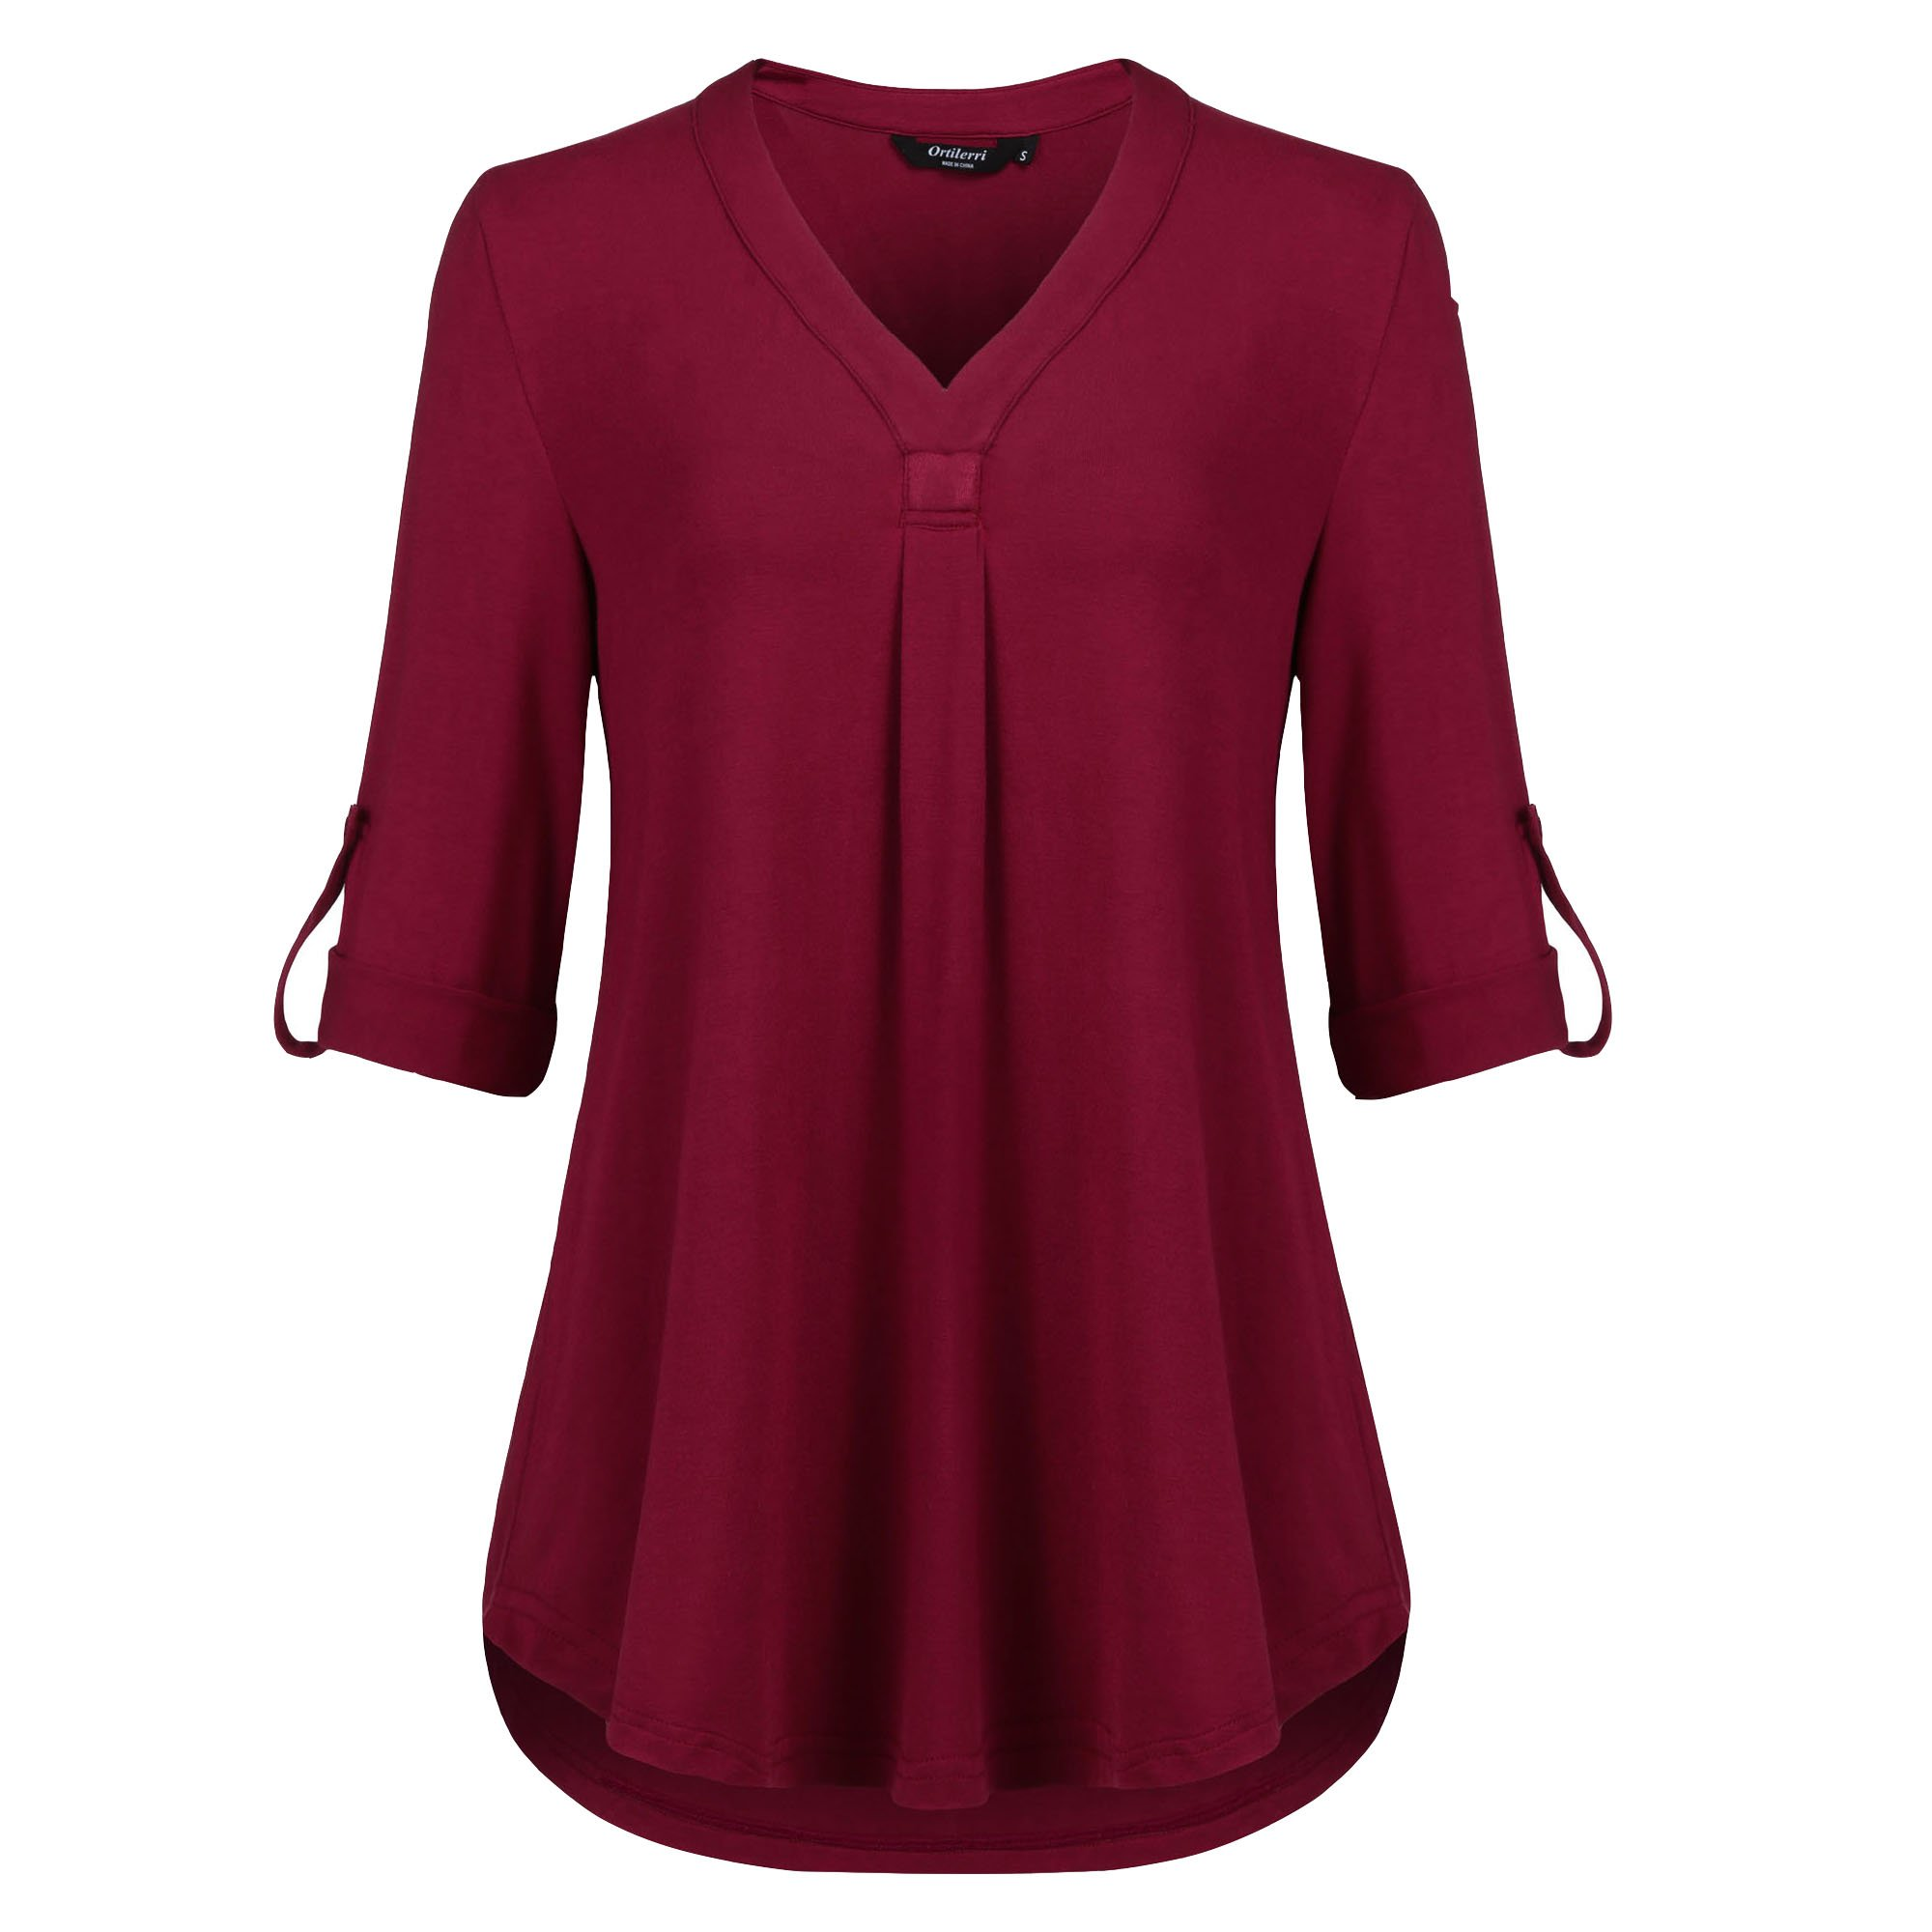 Ortilerri V Neck Roll-up 3/4 Sleeves Loose Fit Tunic Tops (Wine 02, XXL)